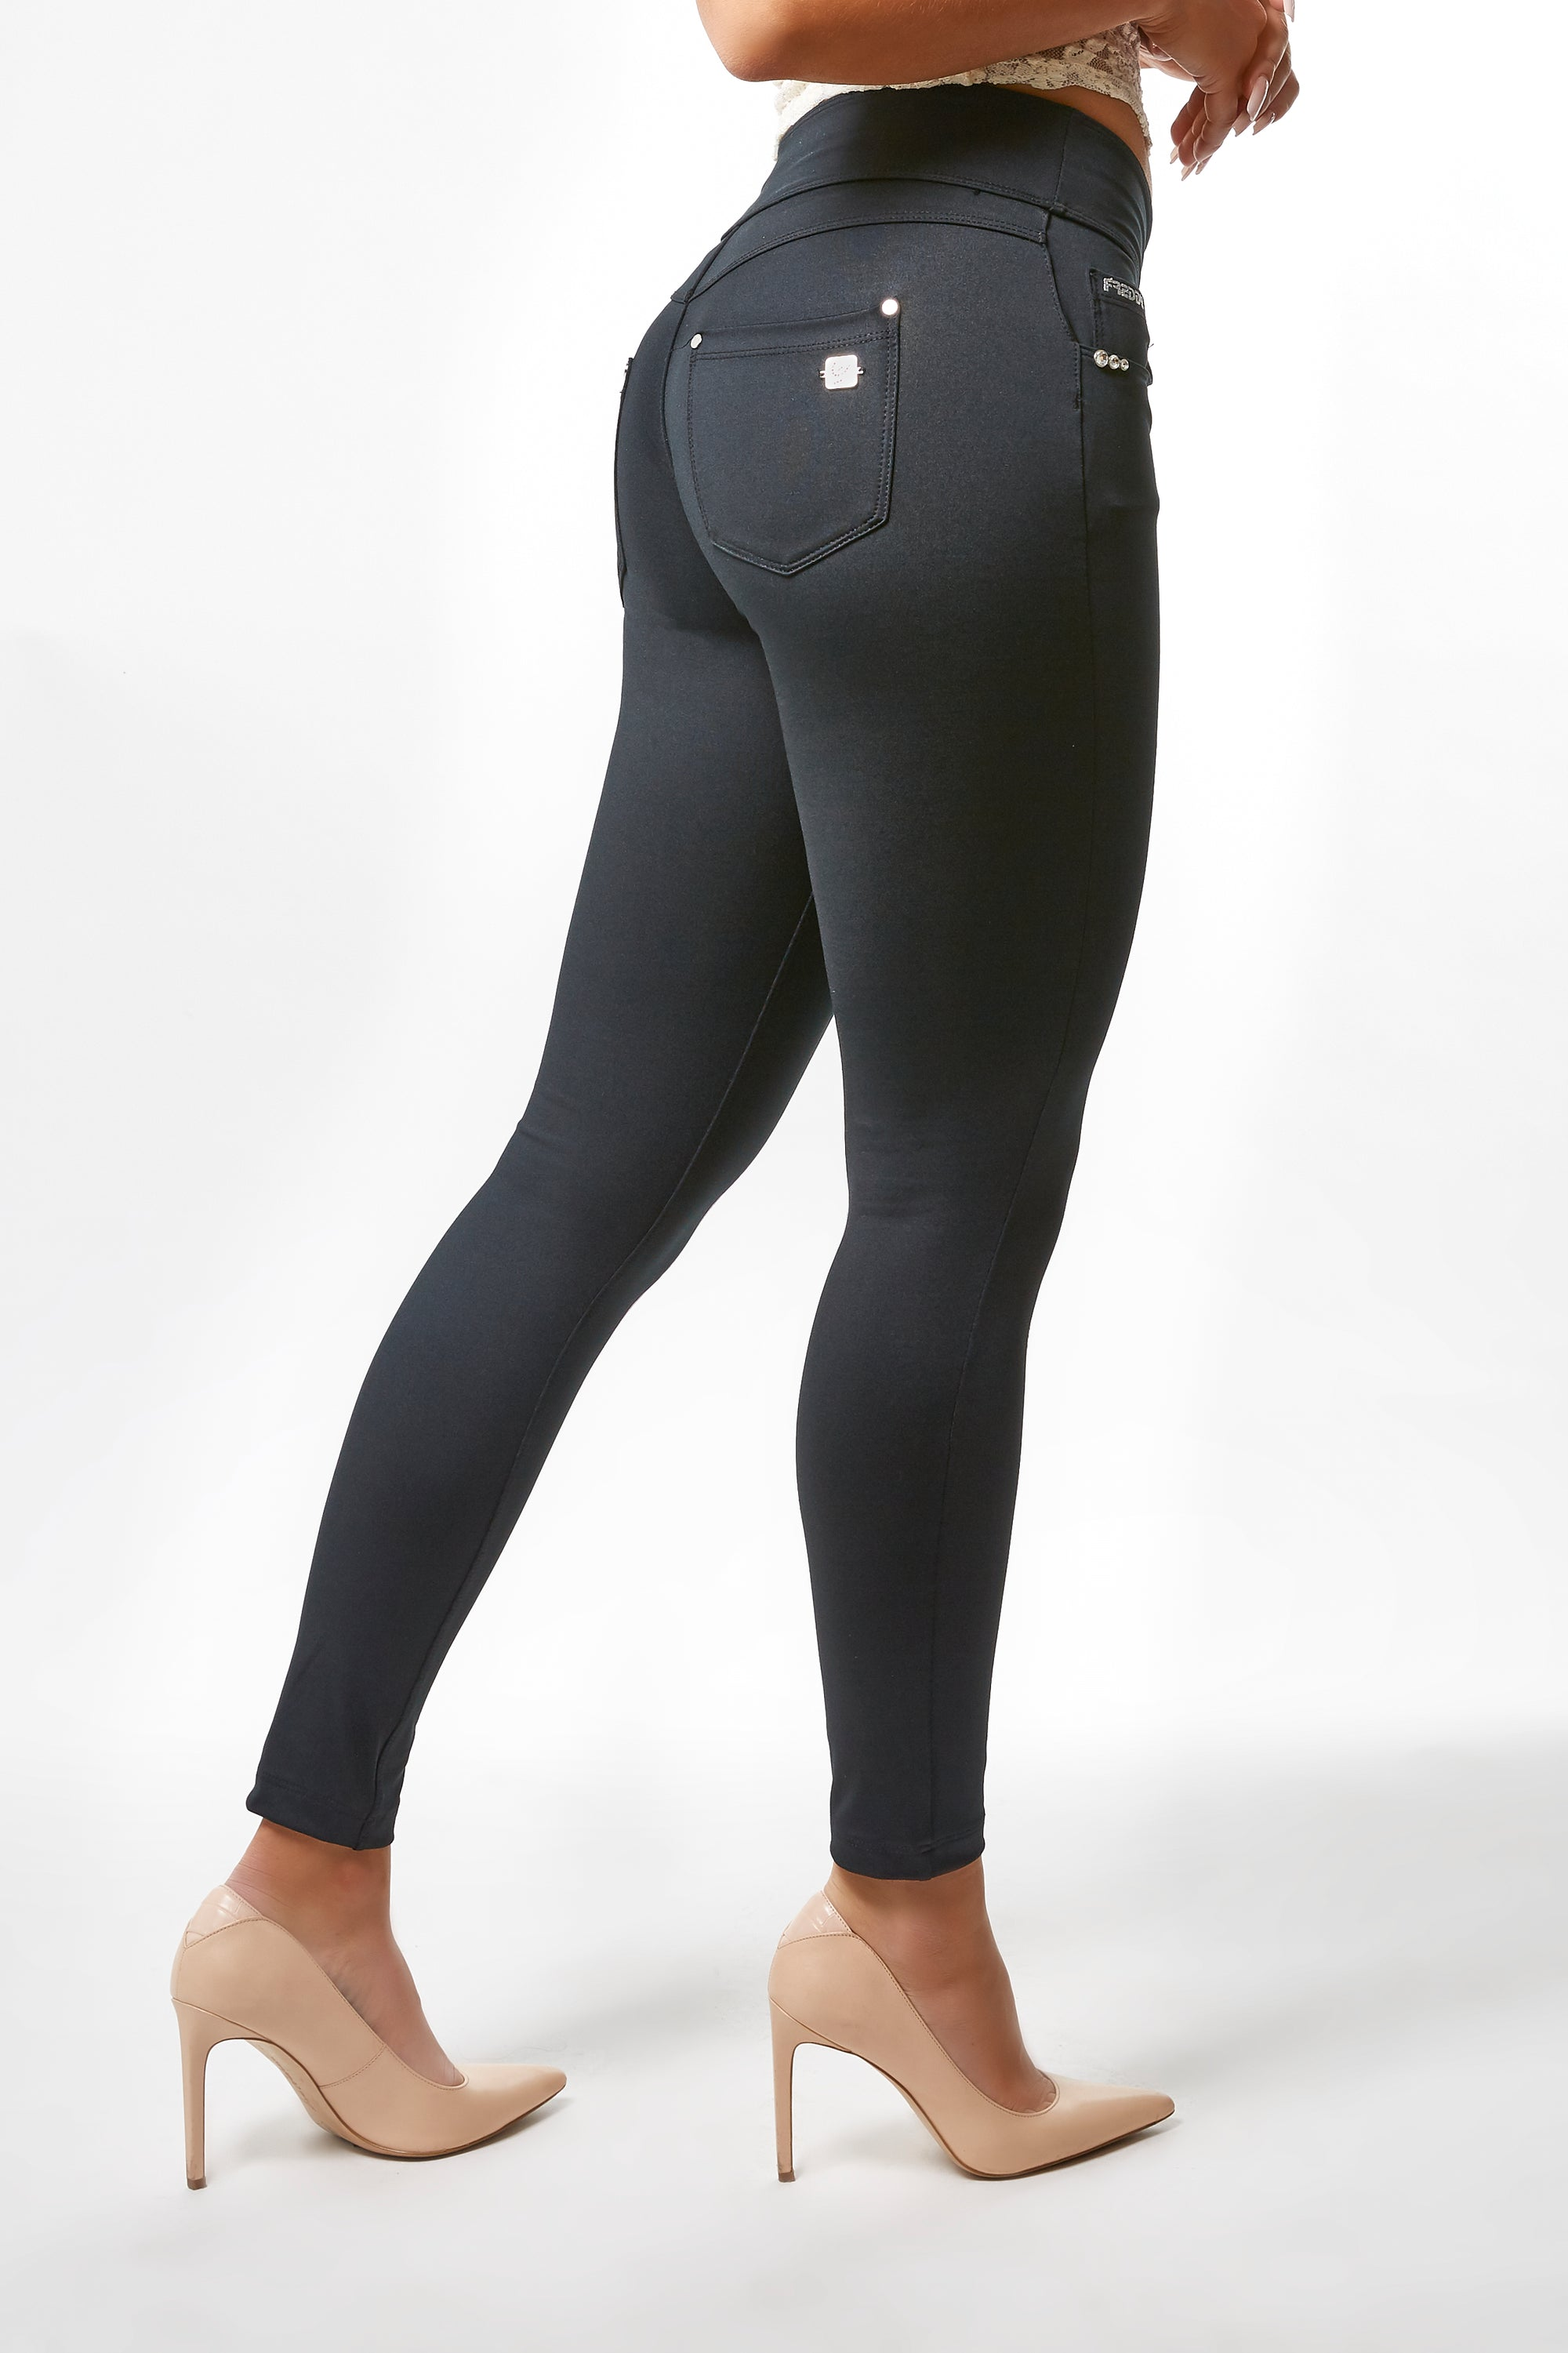 N.O.W.® YOGA Fashion - High Rise Full Length Satin Finish - Black